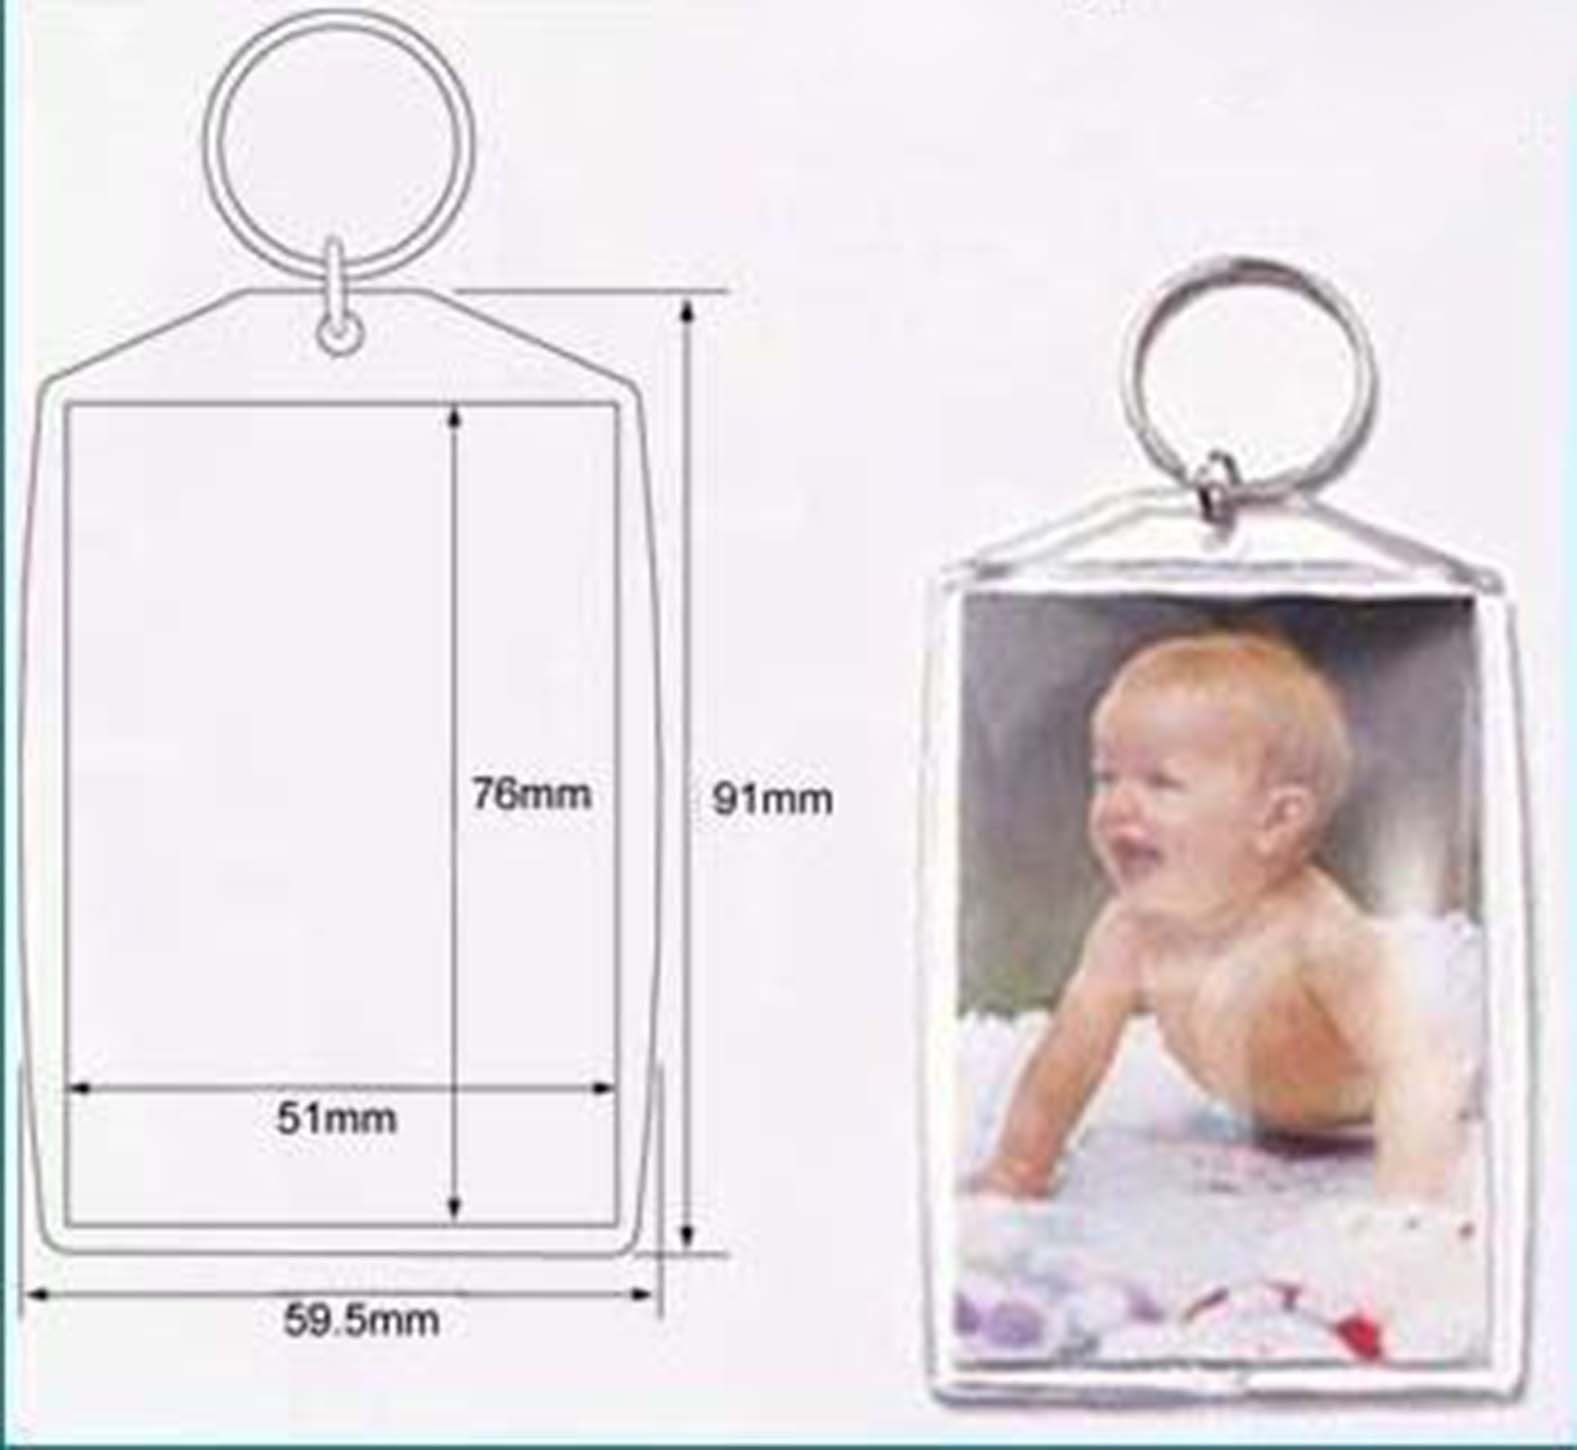 50 Pcs of Blank Clear Acrylic Keyring 51x76mm (approx. 2 x 3 inches) Photo Insert Craft Keychain 99808